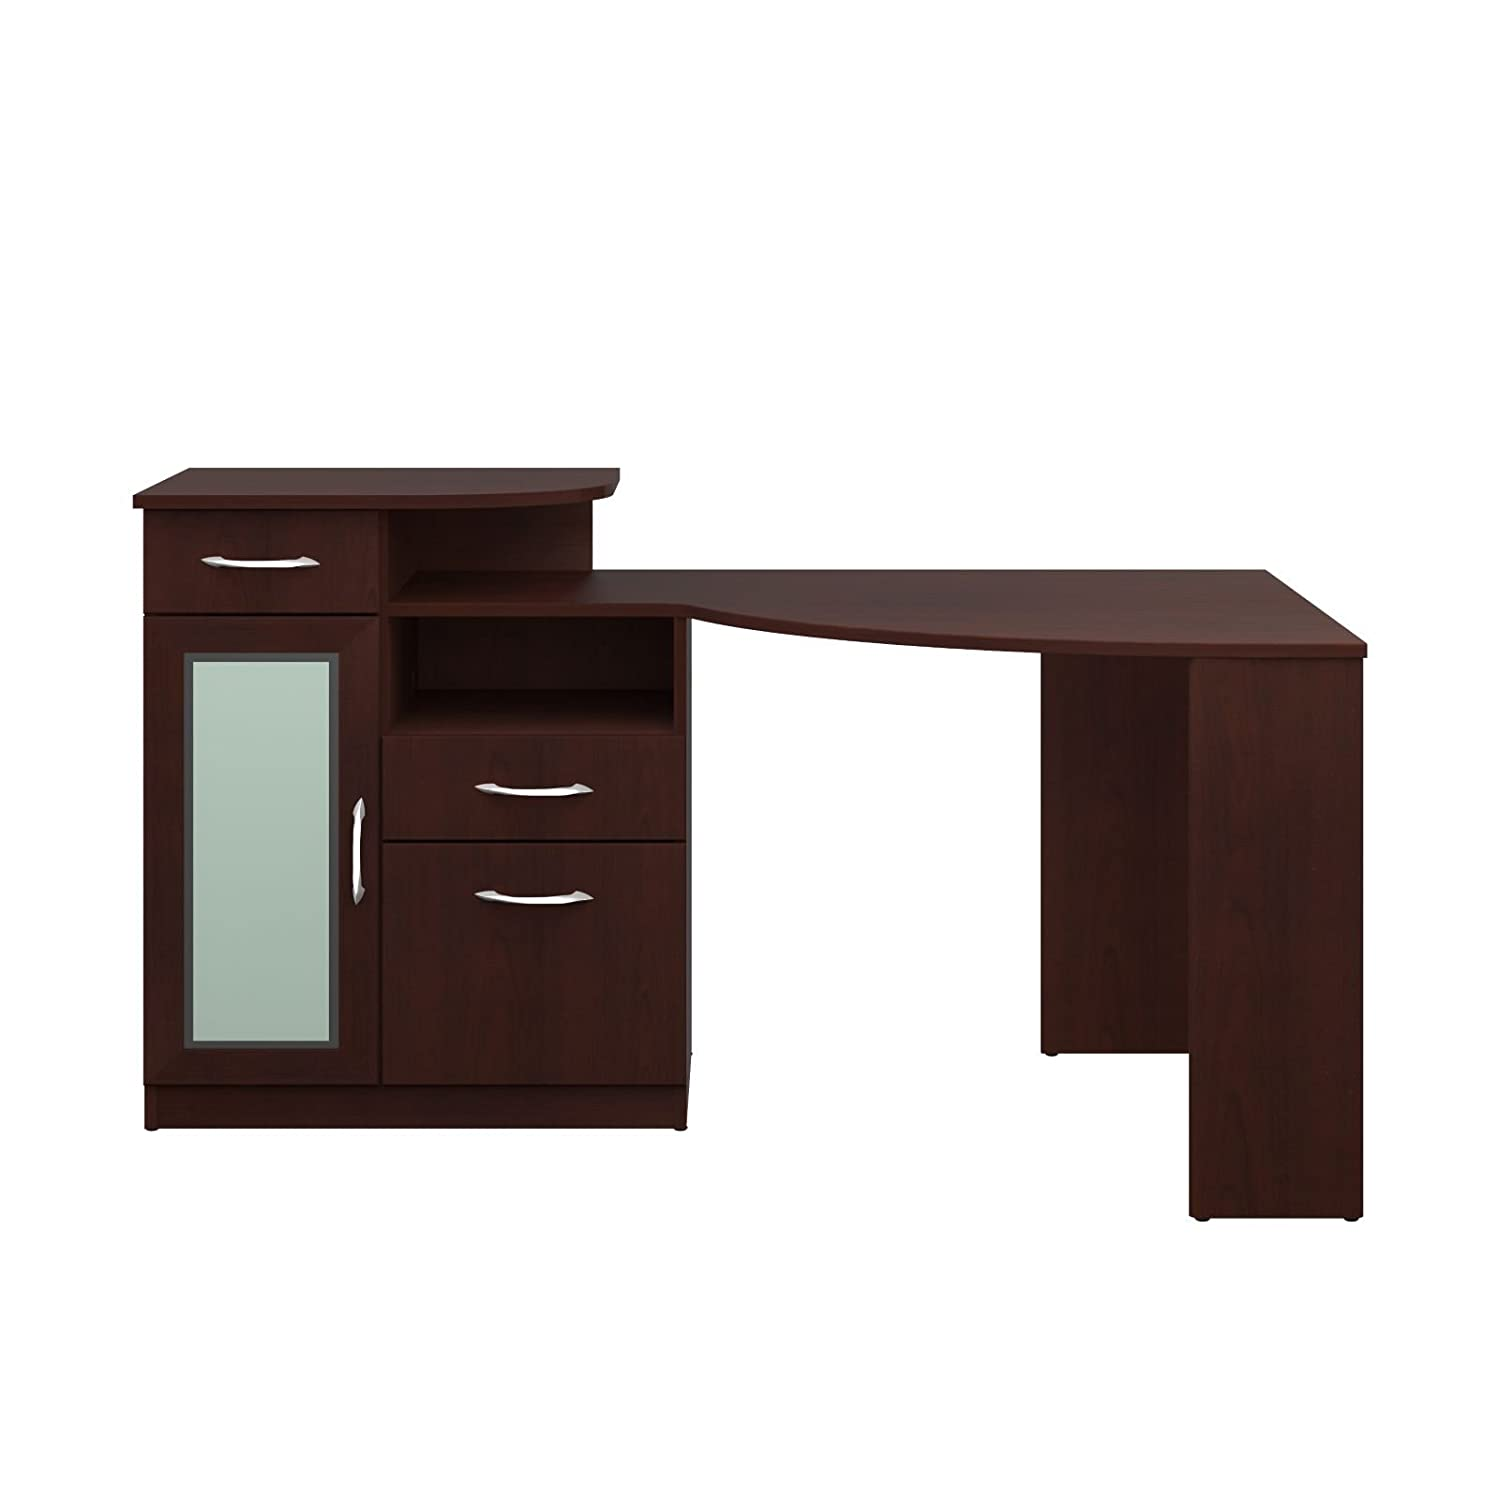 Marvelous Amazon.com: Bush Furniture Vantage Corner Desk, Harvest Cherry: Kitchen U0026  Dining